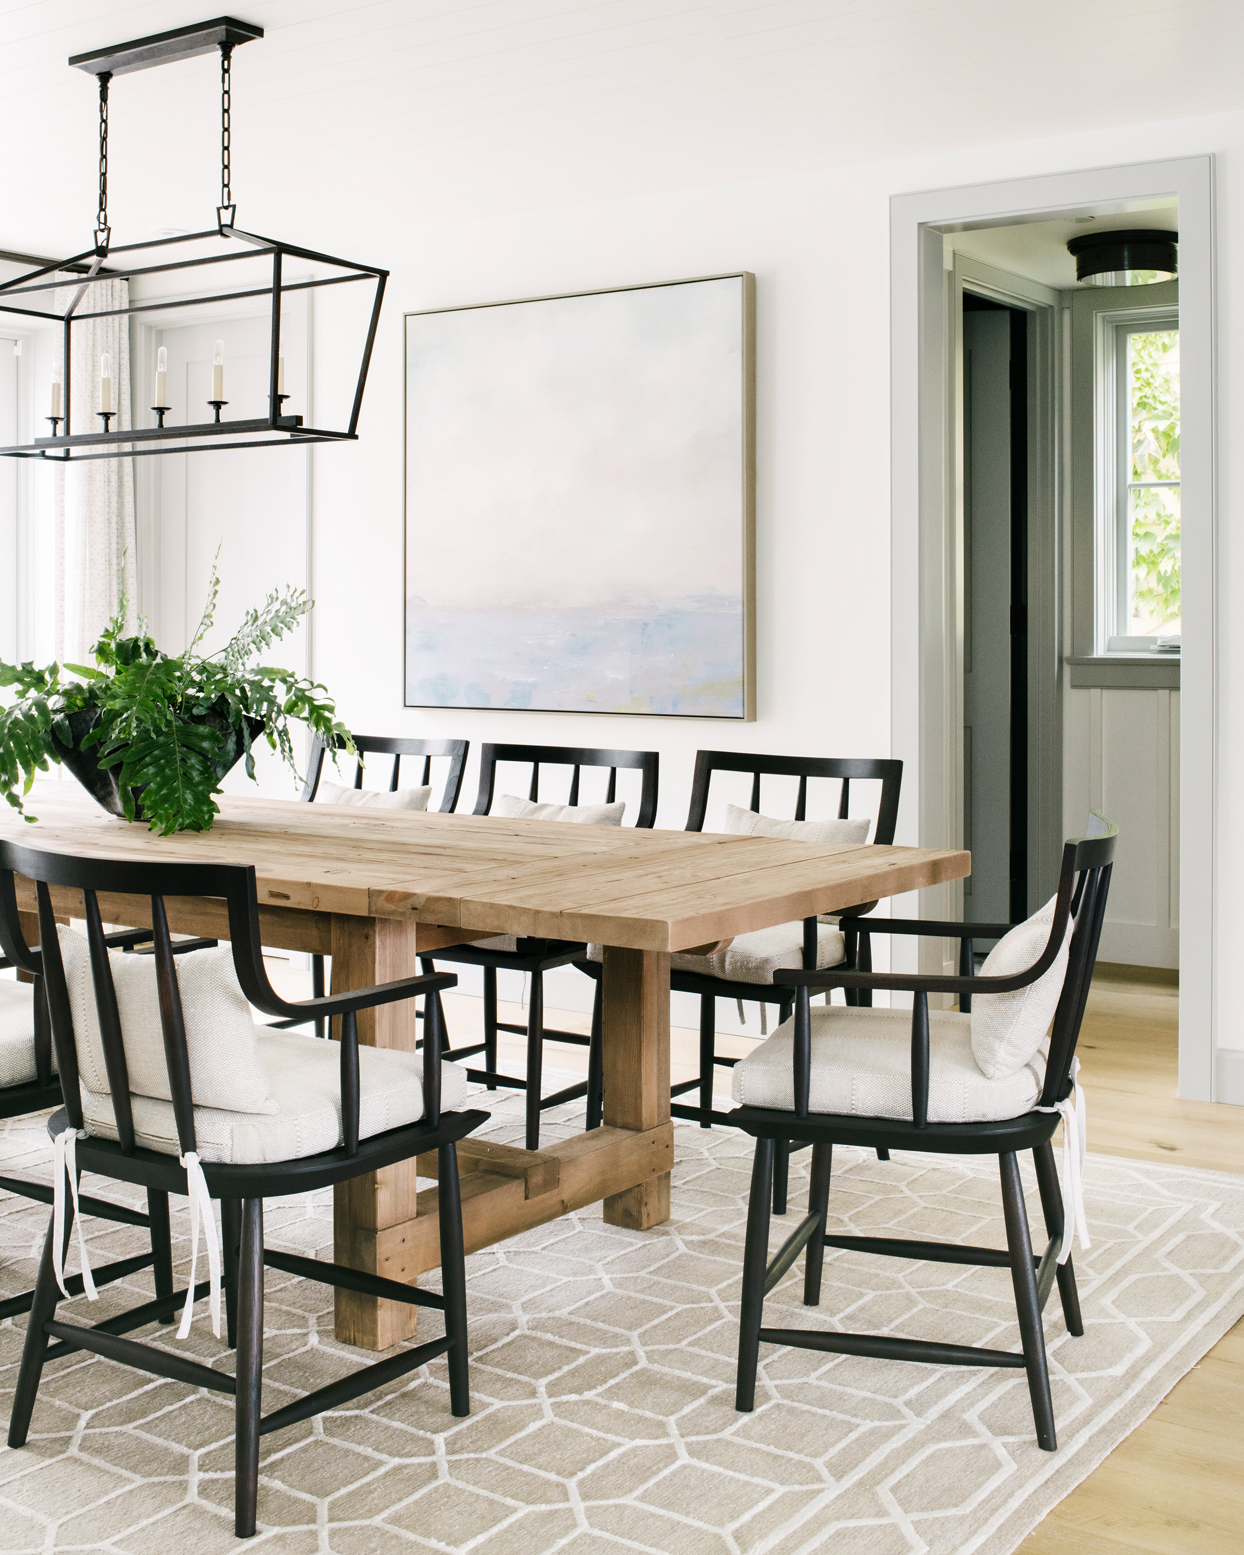 unfinished wooden dining table with black wooden chairs and cream colored cushions